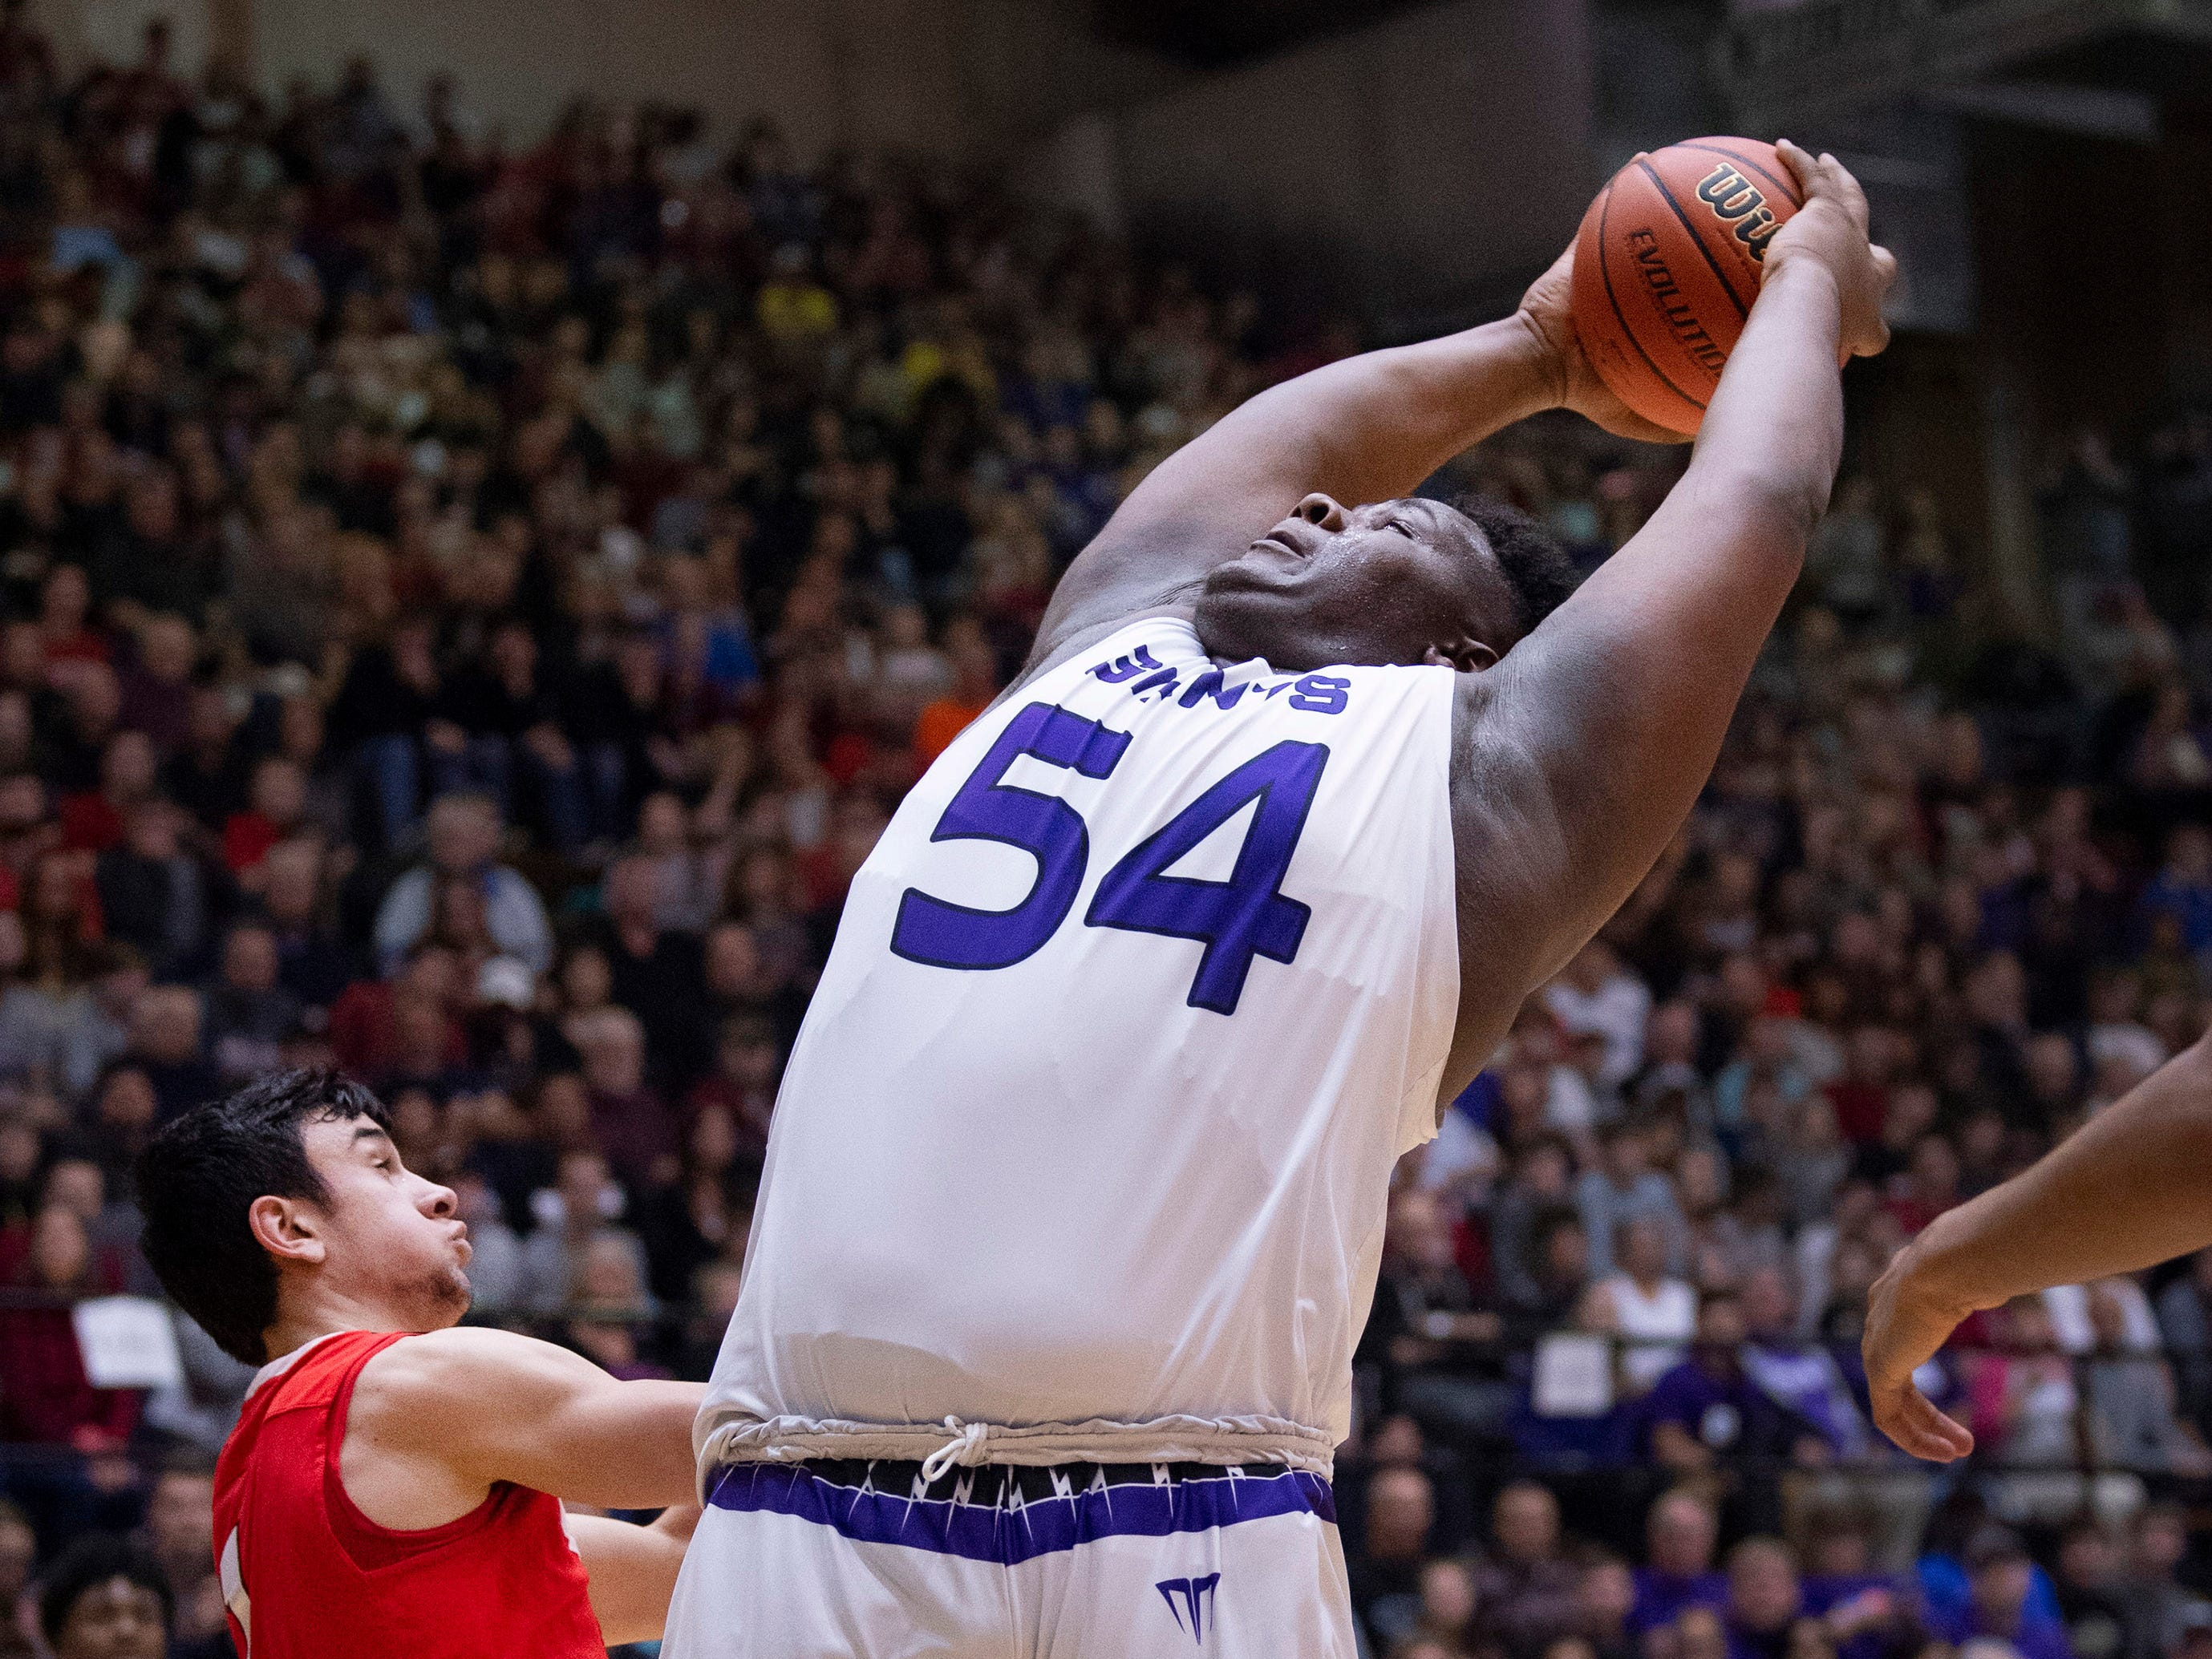 Ben Davis's Dawand Jones (54) grabs a rebound in front of Center Grove's Ben Nicoson (1) during the 4A Boys Indiana Semi-State Basketball Tournament at the Hatchet House in Washington, Ind., Saturday afternoon.